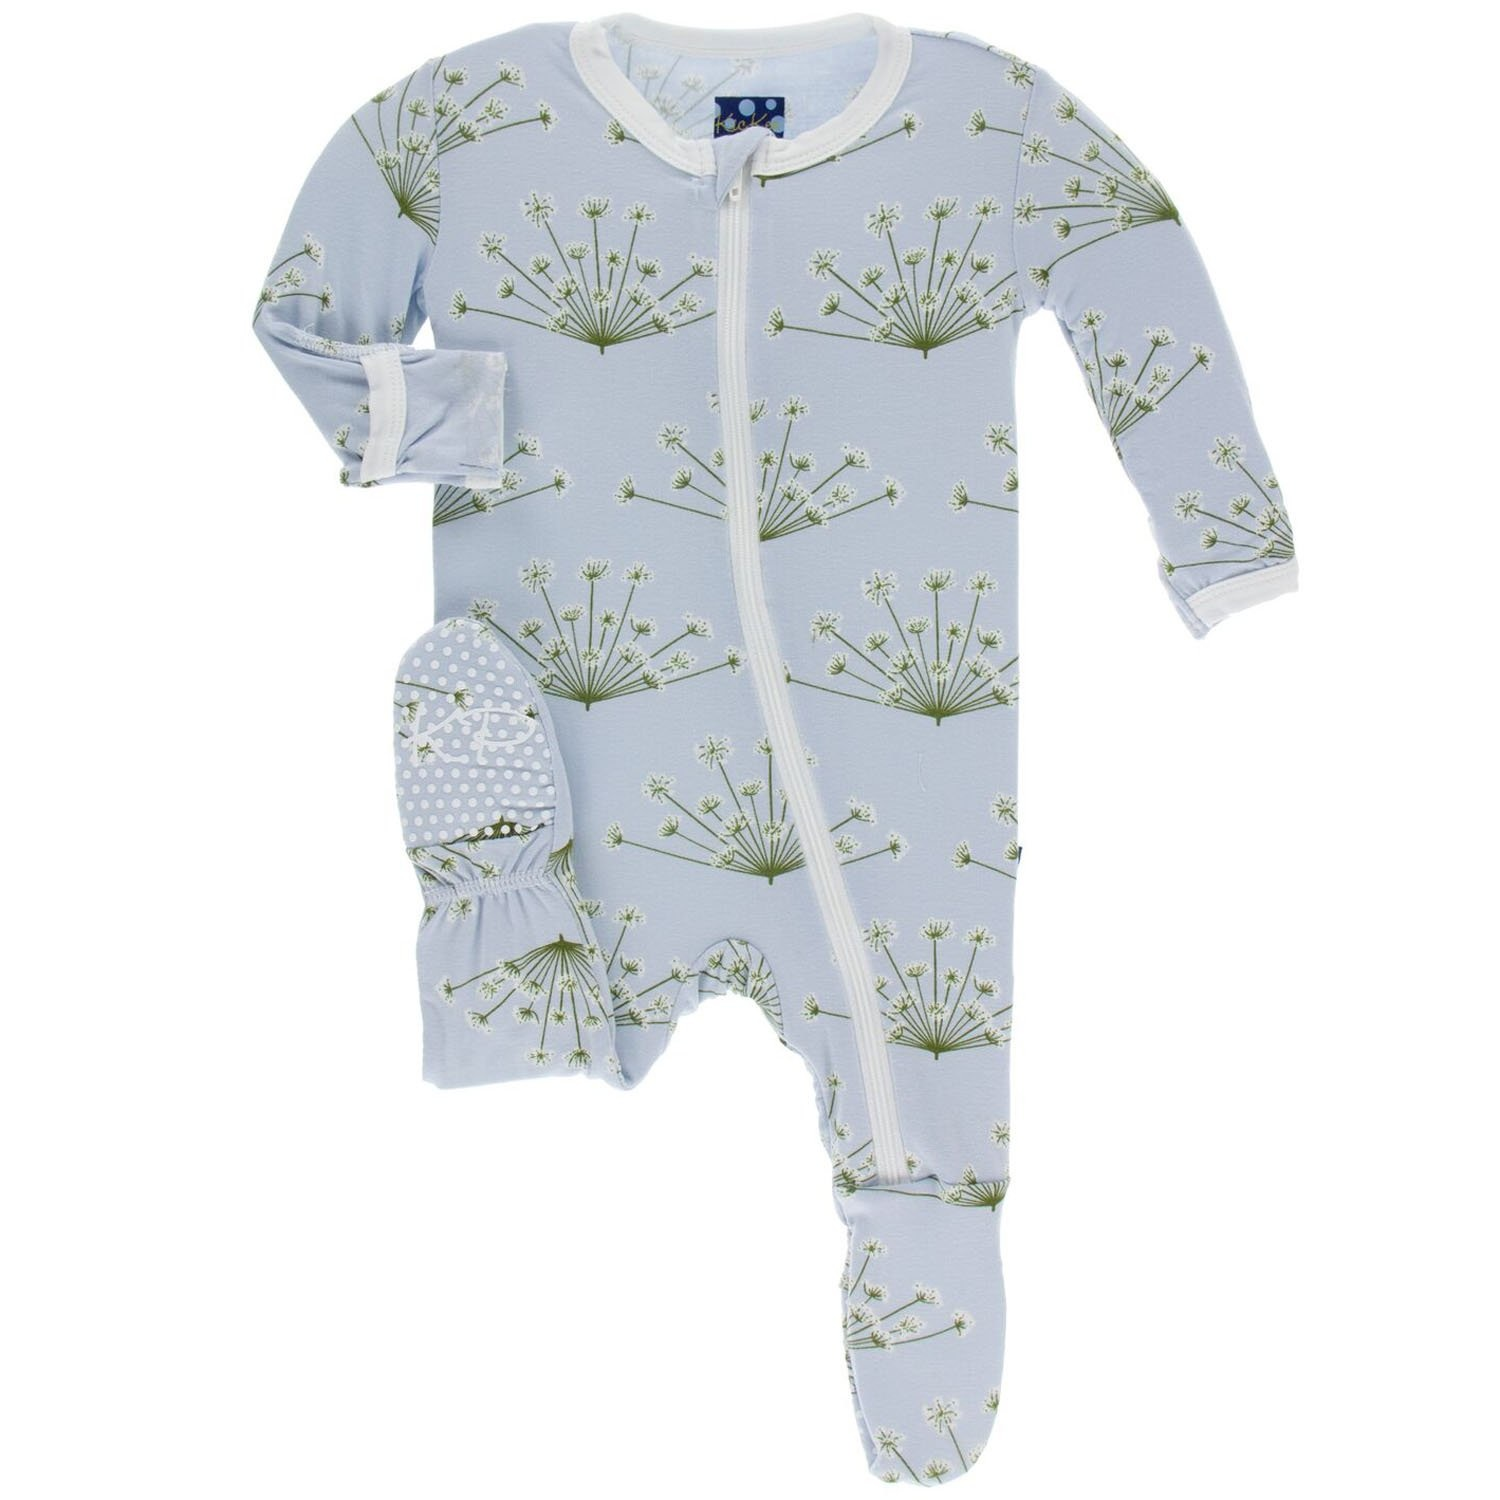 KicKee Pants KicKee Pants Bamboo Footie with Zipper - Dew Dill